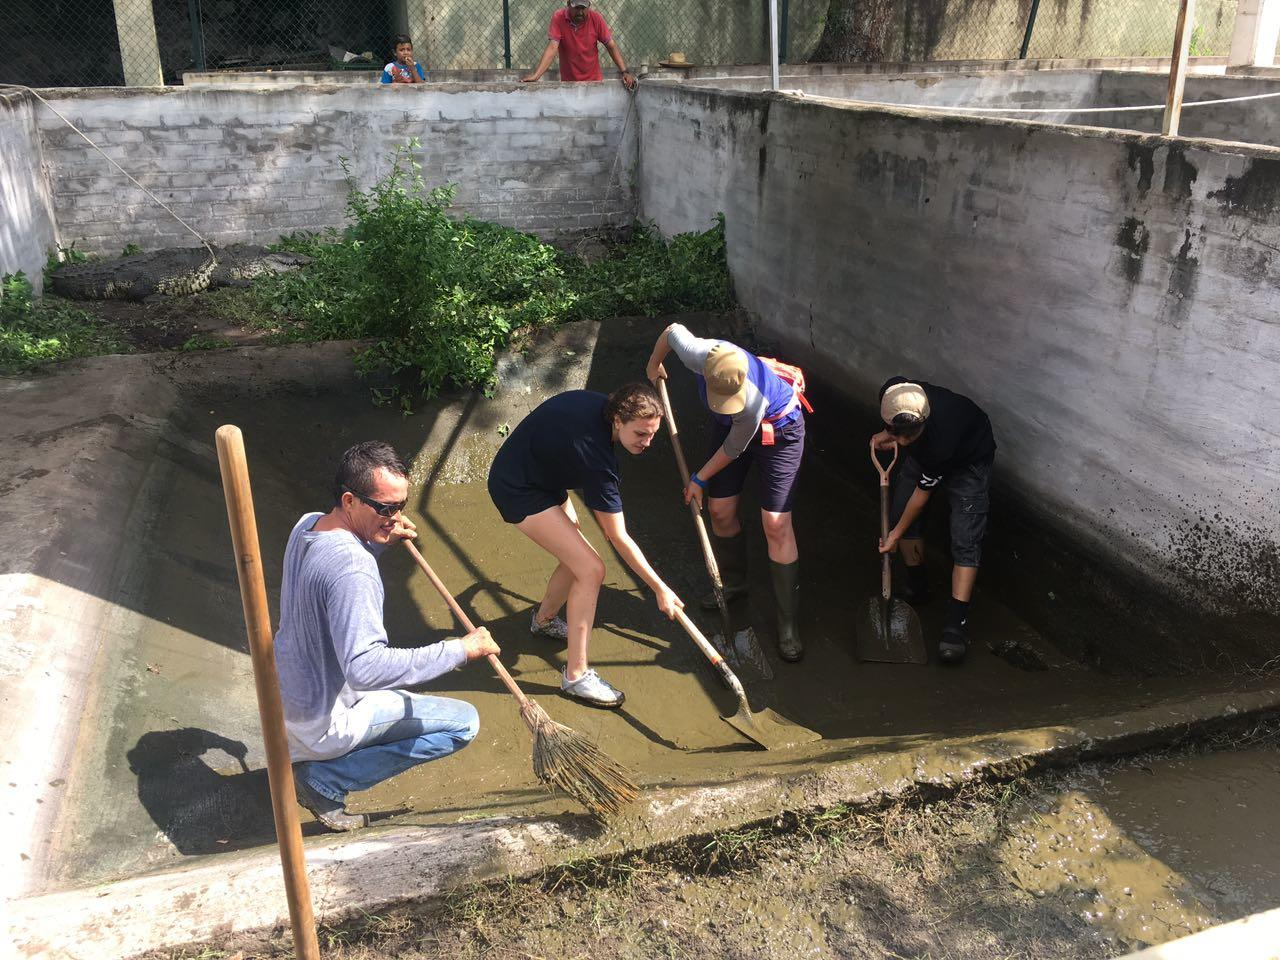 A group cleans a crocodile enclosure for their conservation volunteering in Mexico.